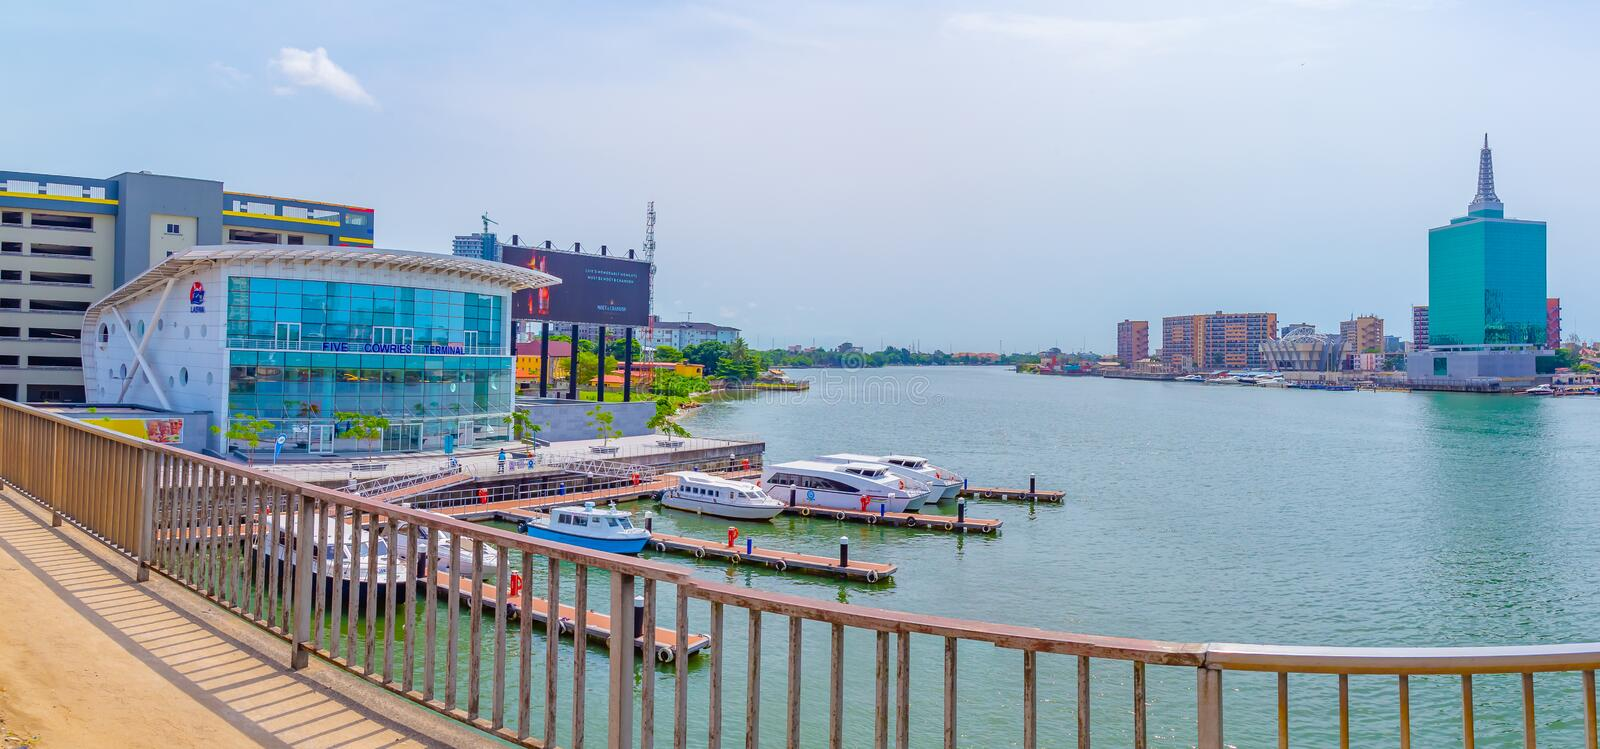 Panoramic view of Five Cowries Creek Lagos Nigeria. Five Cowries Creek is a portion of the Lagos lagoon which separates Ikoyi on the left in the photo from royalty free stock image